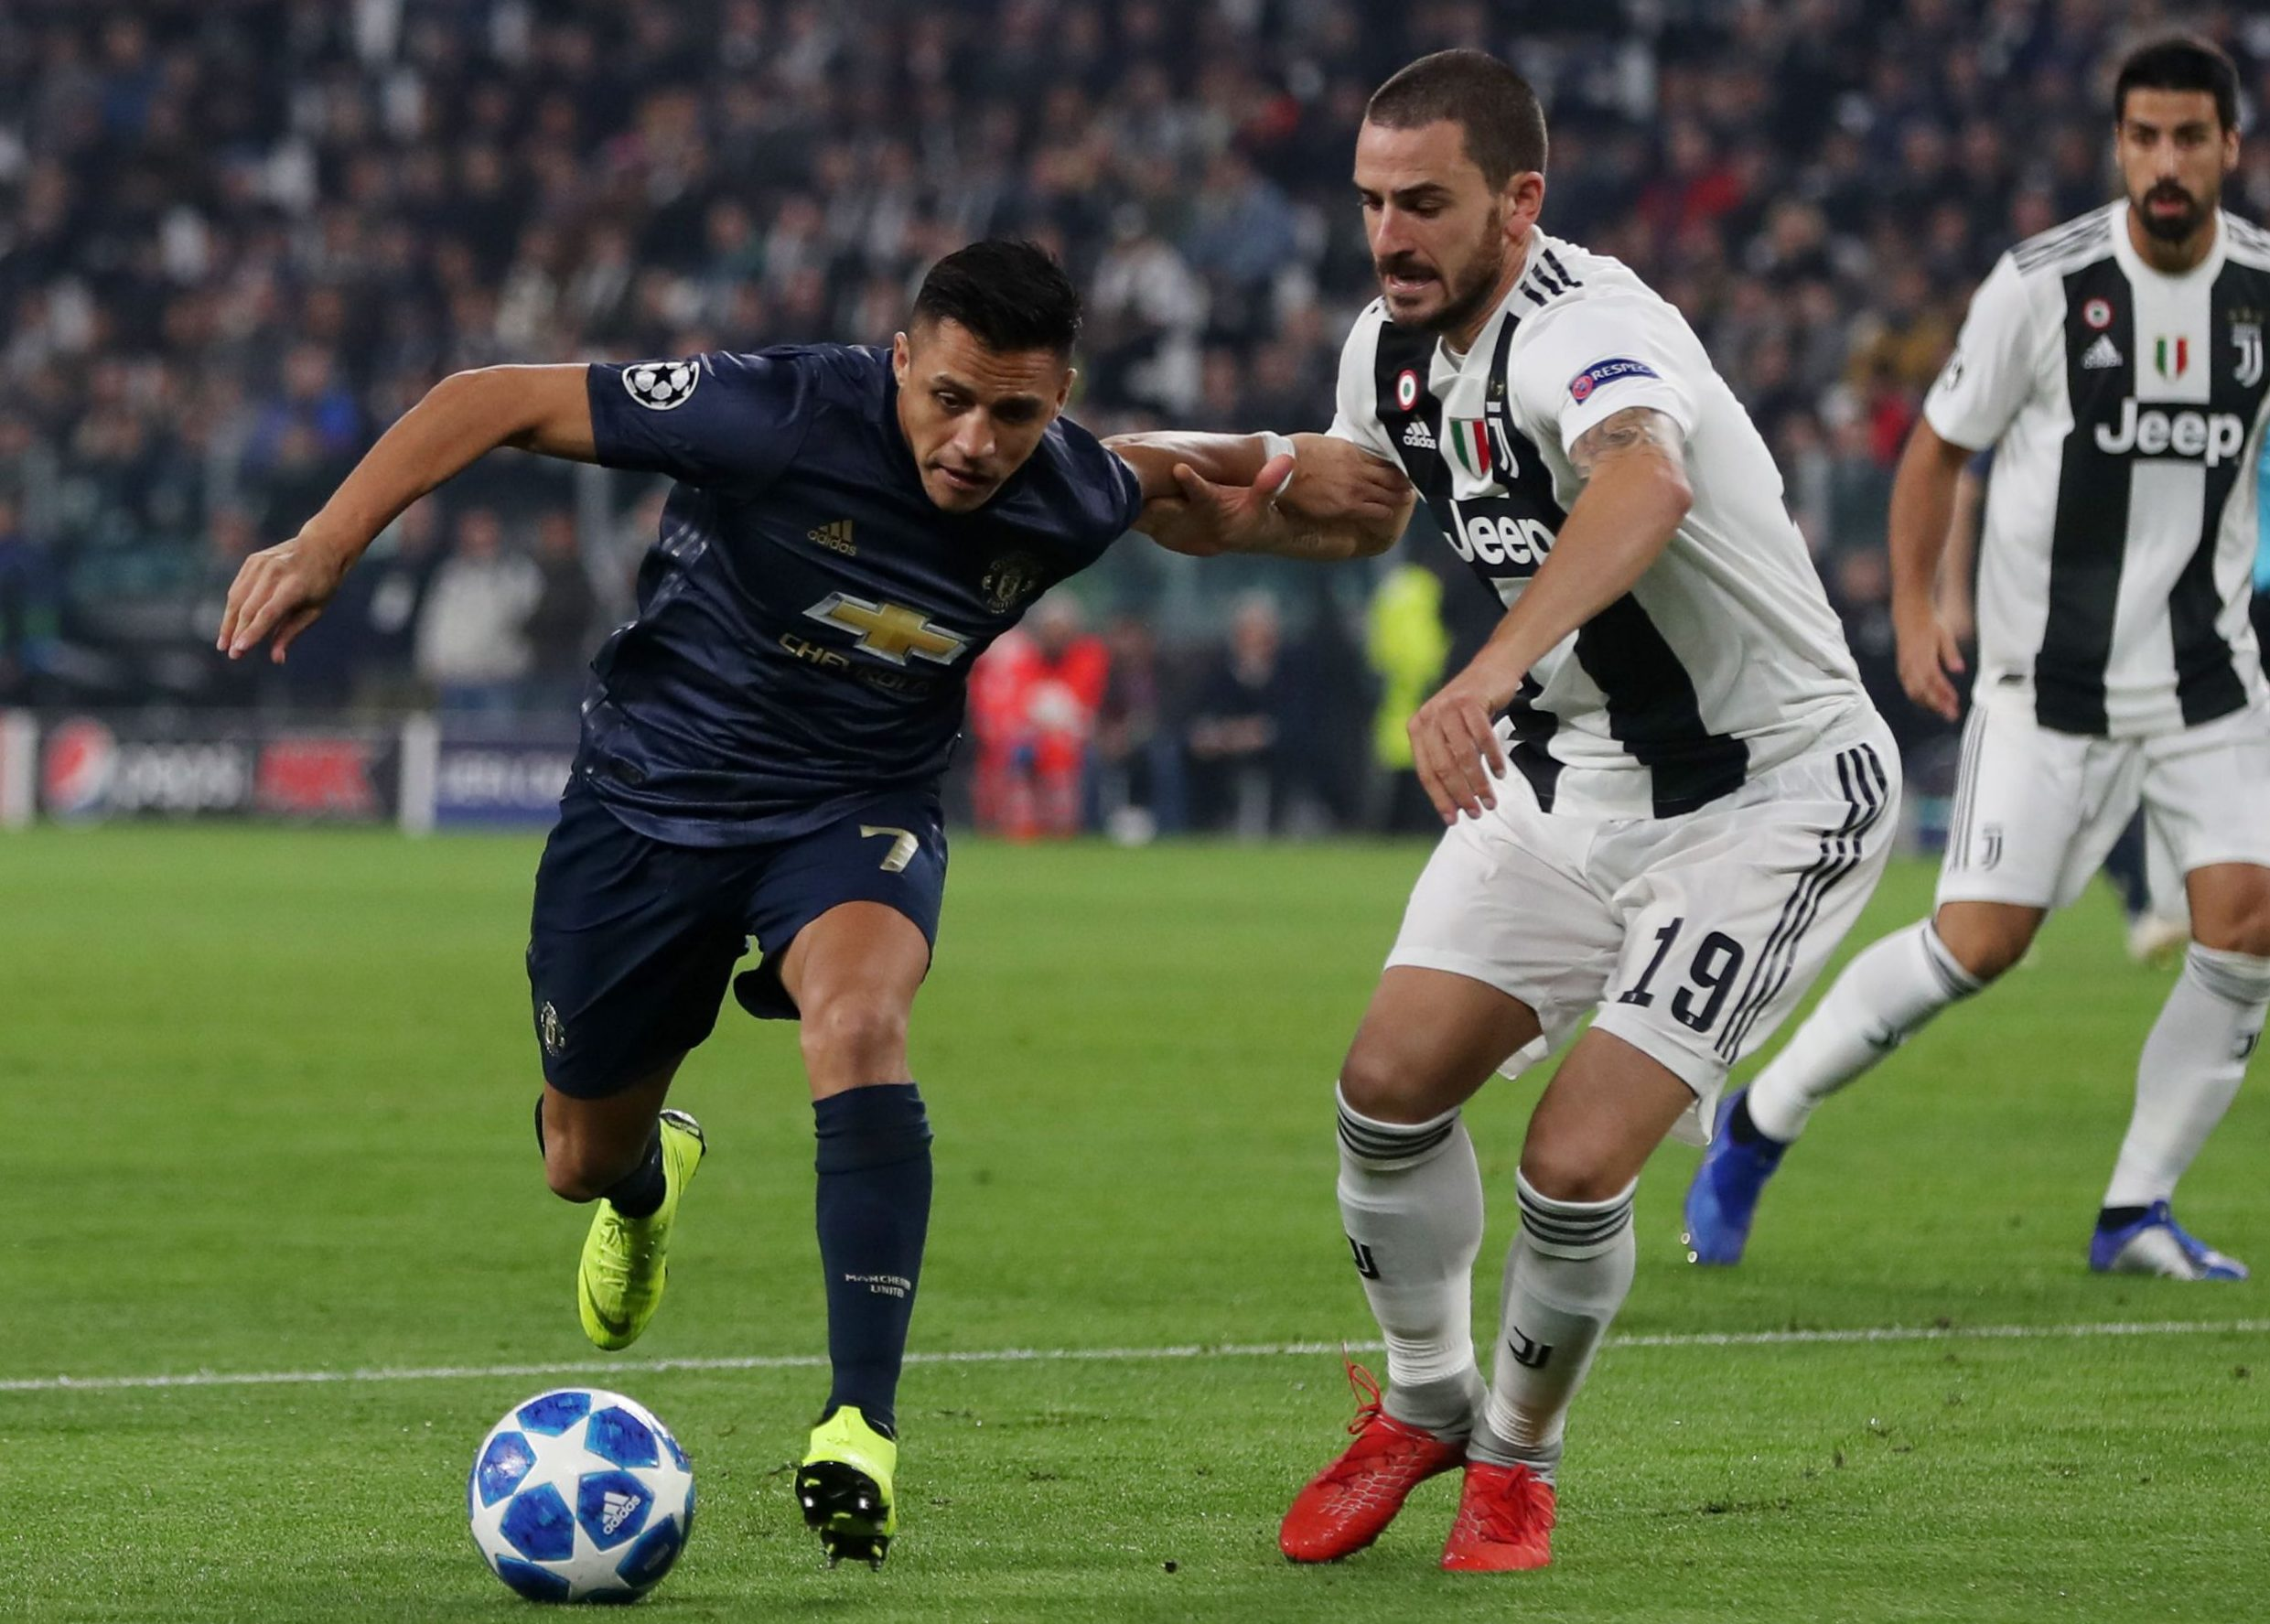 Mandatory Credit: Photo by Paul Currie/BPI/REX (9970191w) Alexis Sanchez of Manchester United and Leonardo Bonucci of Juventus Juventus v Manchester United, UEFA Champions League Group H, Football, Allianz Stadium, Turin, Italy - 07 Nov 2018